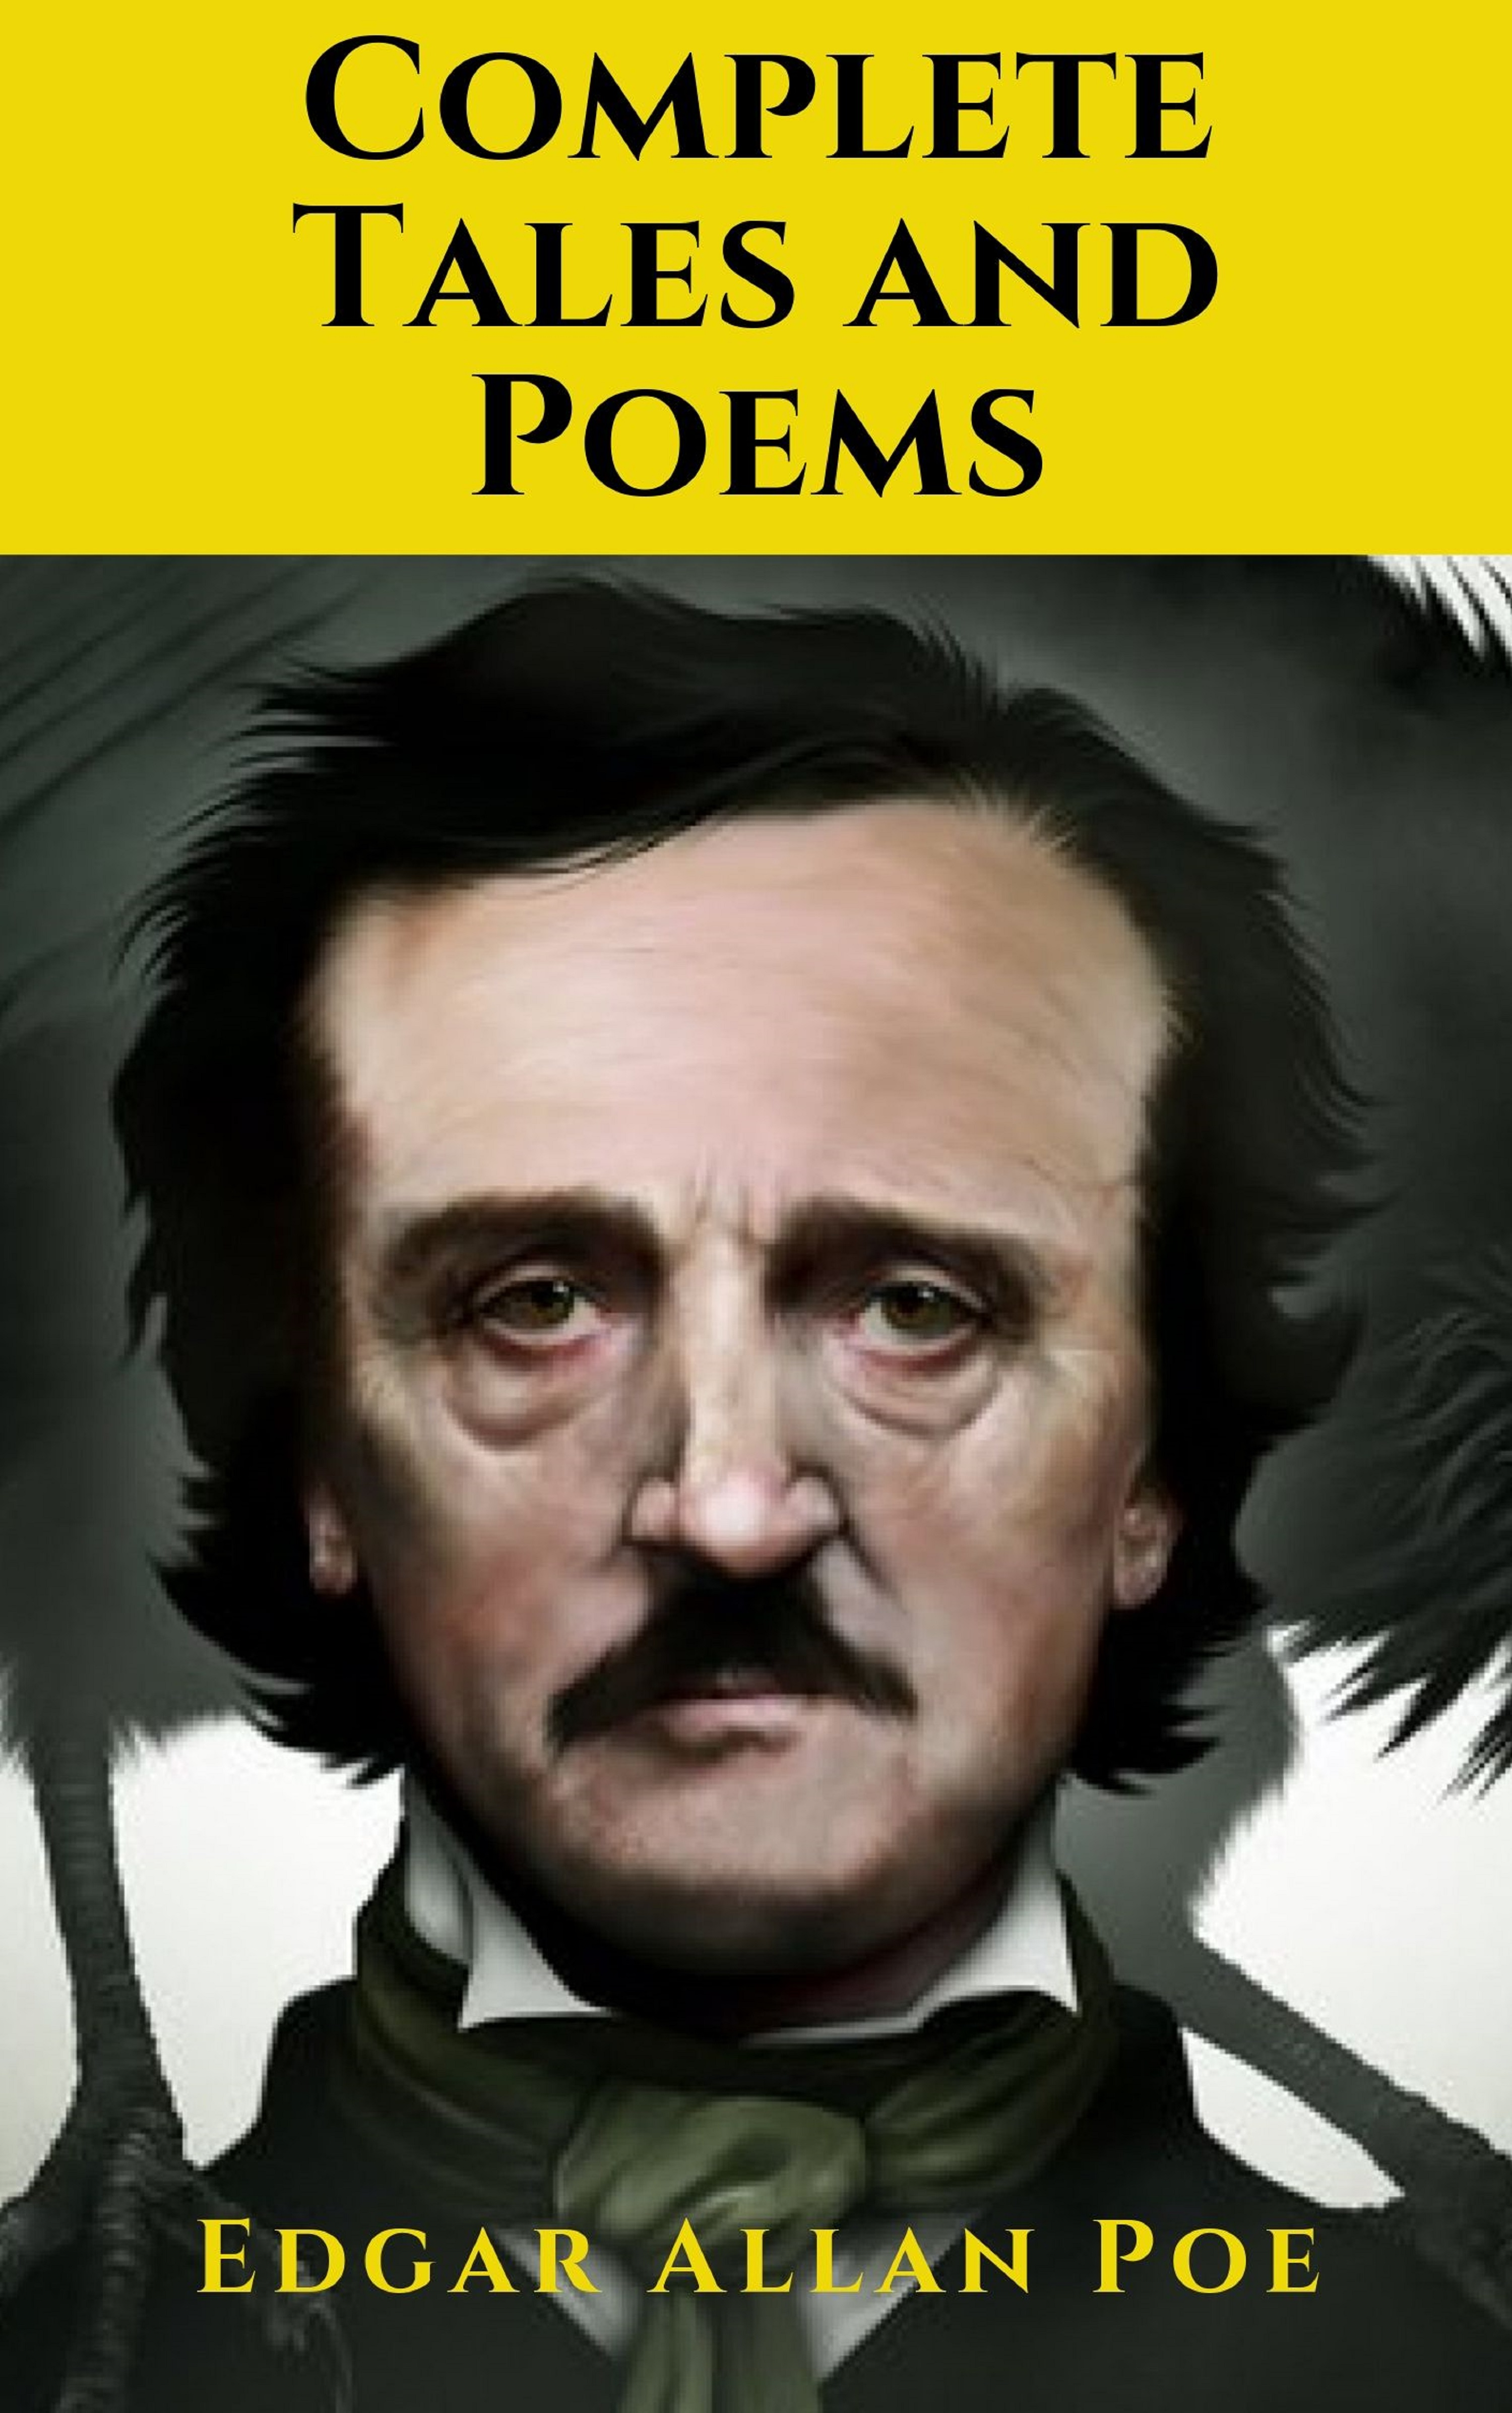 edgar allan poe the complete tales and poems